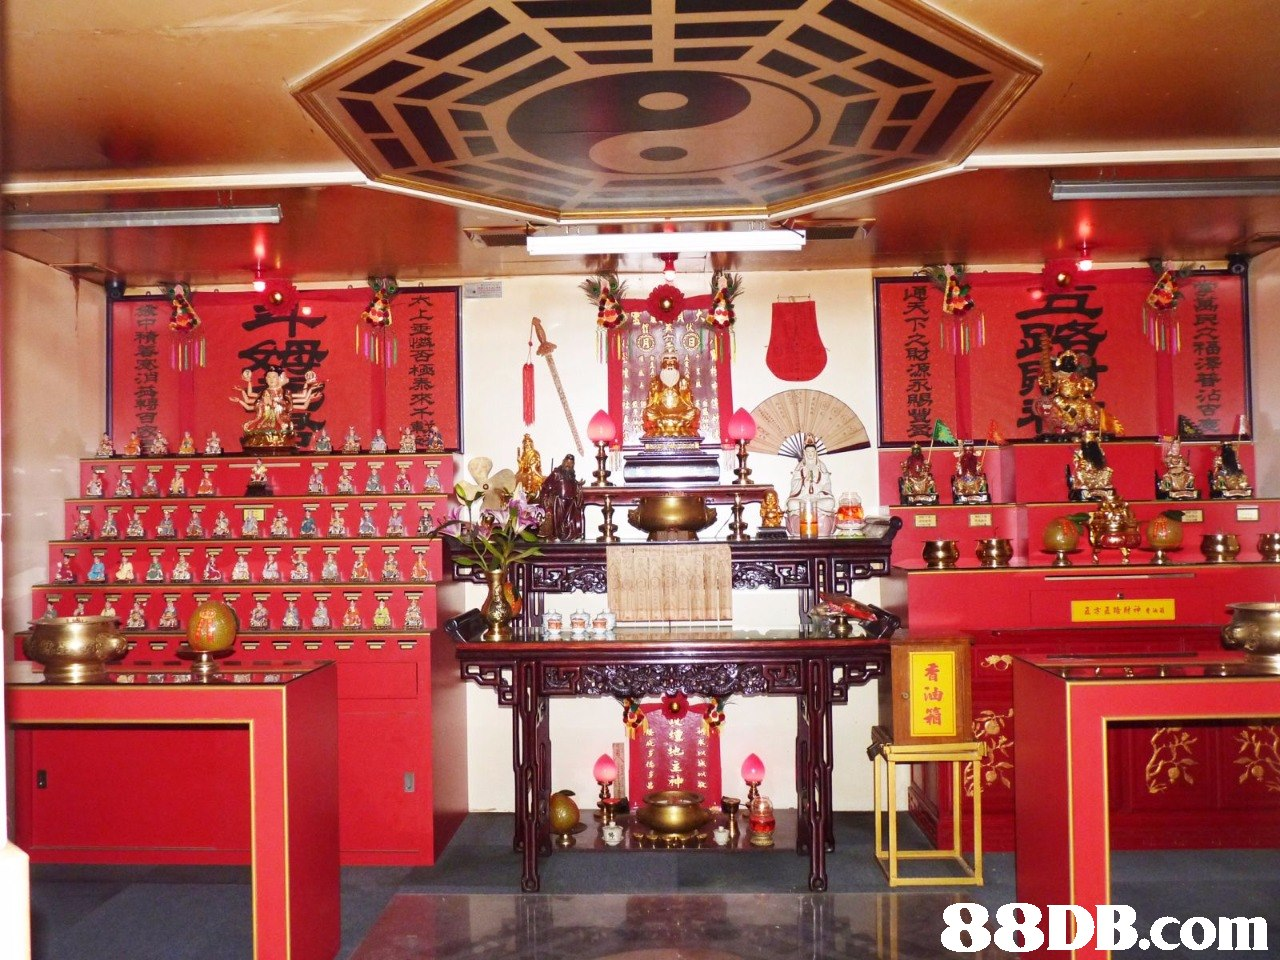 占   Shrine,Place of worship,Building,Temple,Room